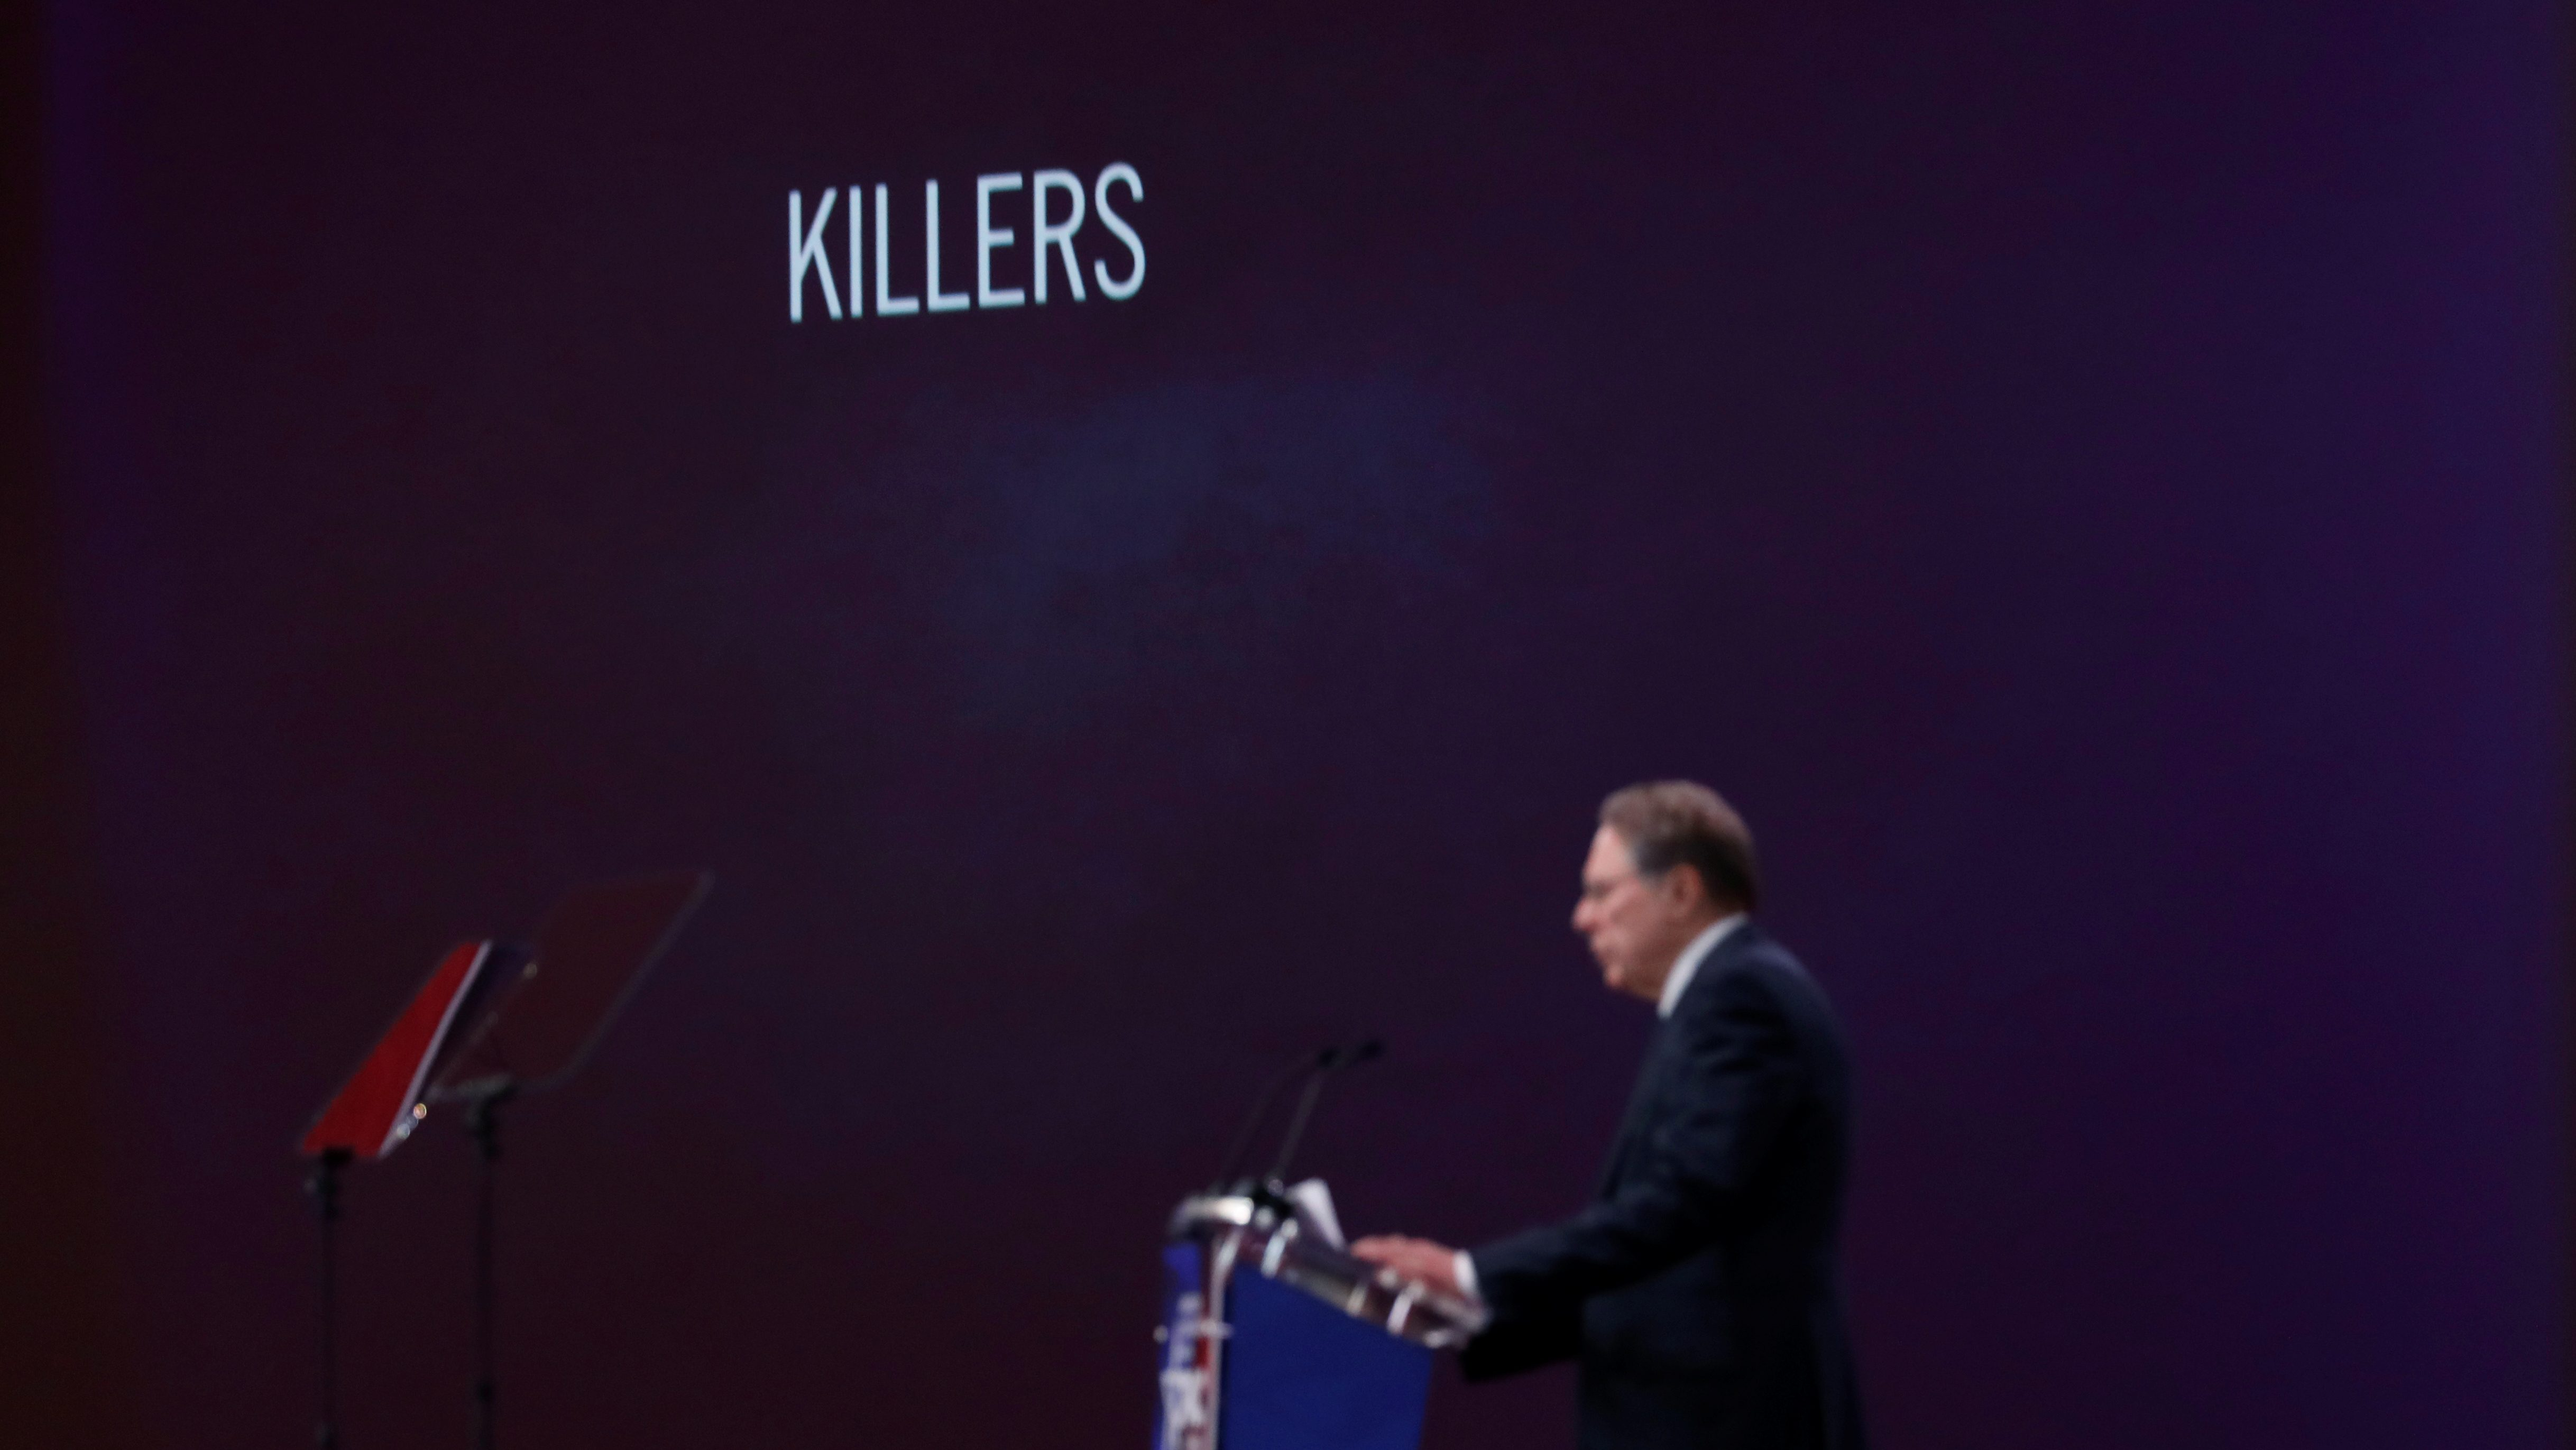 NRA CEO Wayne LaPierre speaks at the Conservative Political Action Conference